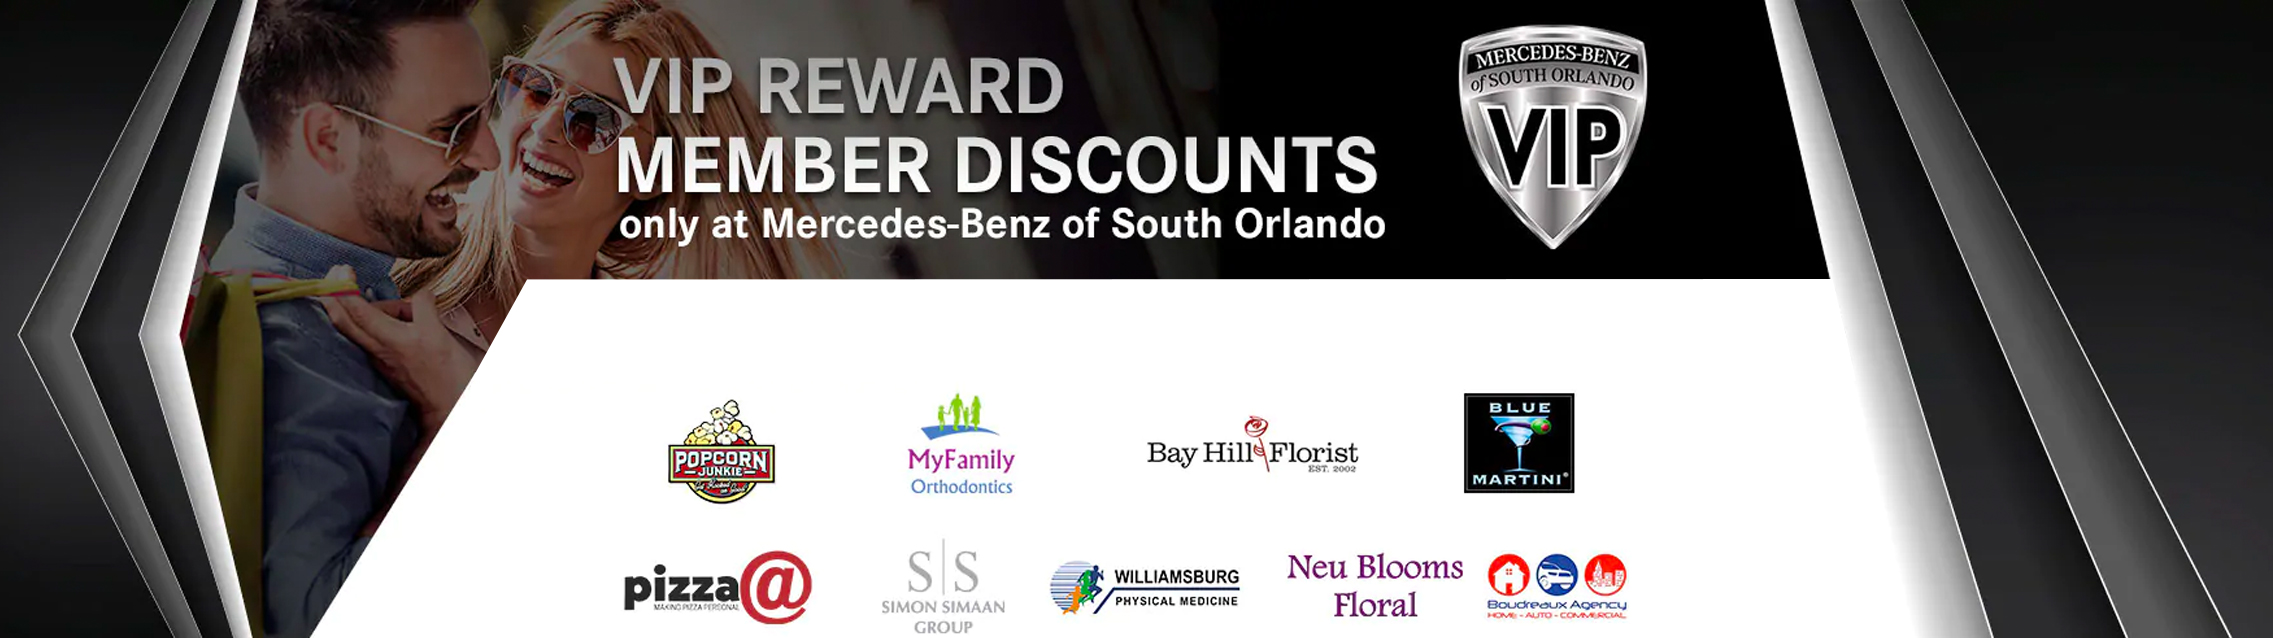 Mercedes-Benz of South Orlando VIP Reward Member Discounts